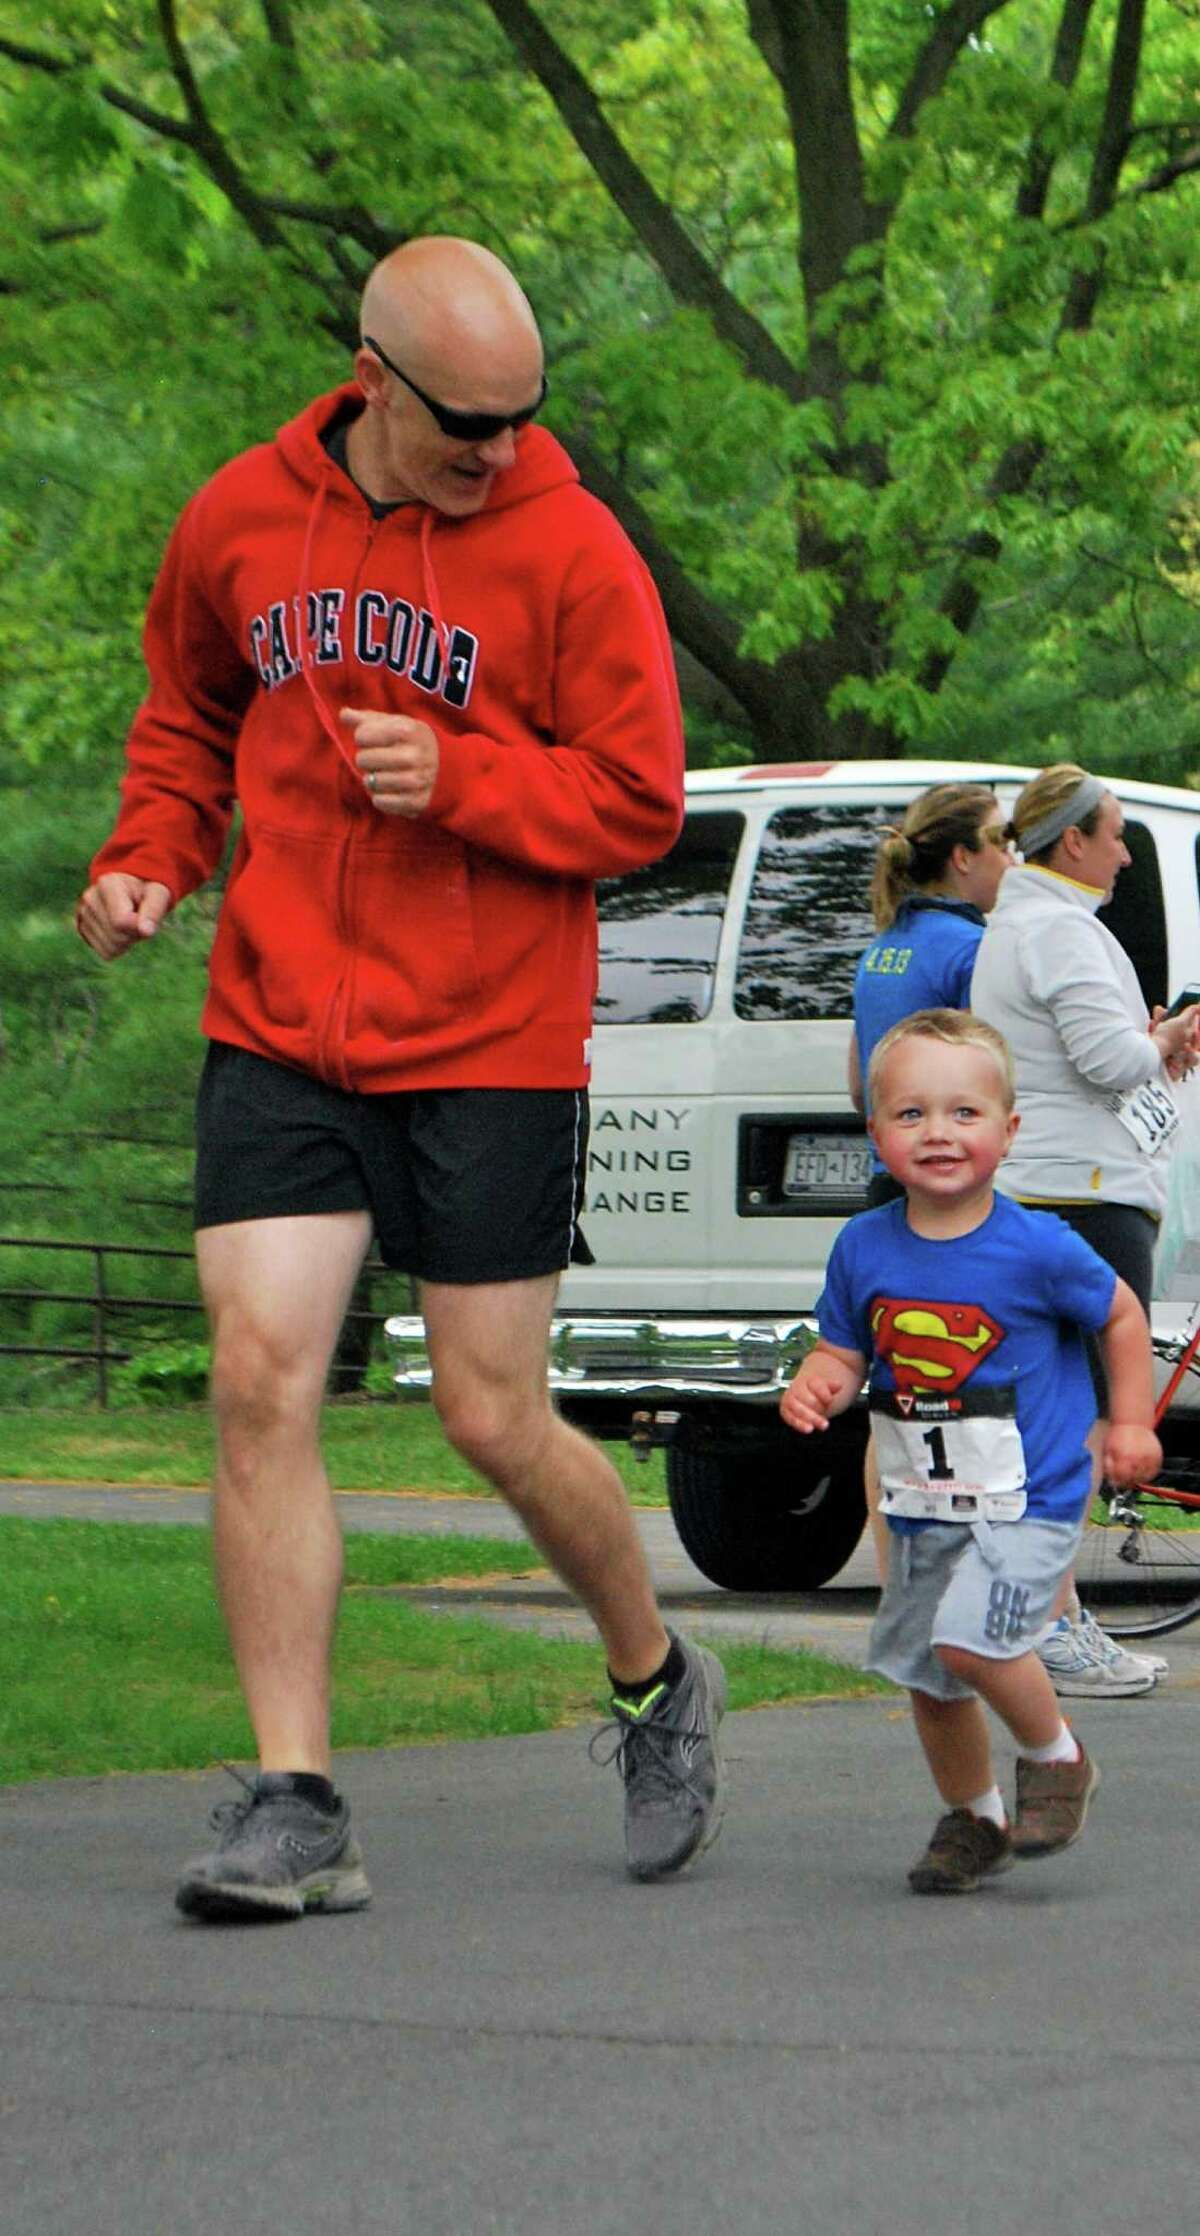 Were you Seen at SPAC's 4th annual Rock & Run sponsored by WEQX on Sunday, May 19th, 2013?